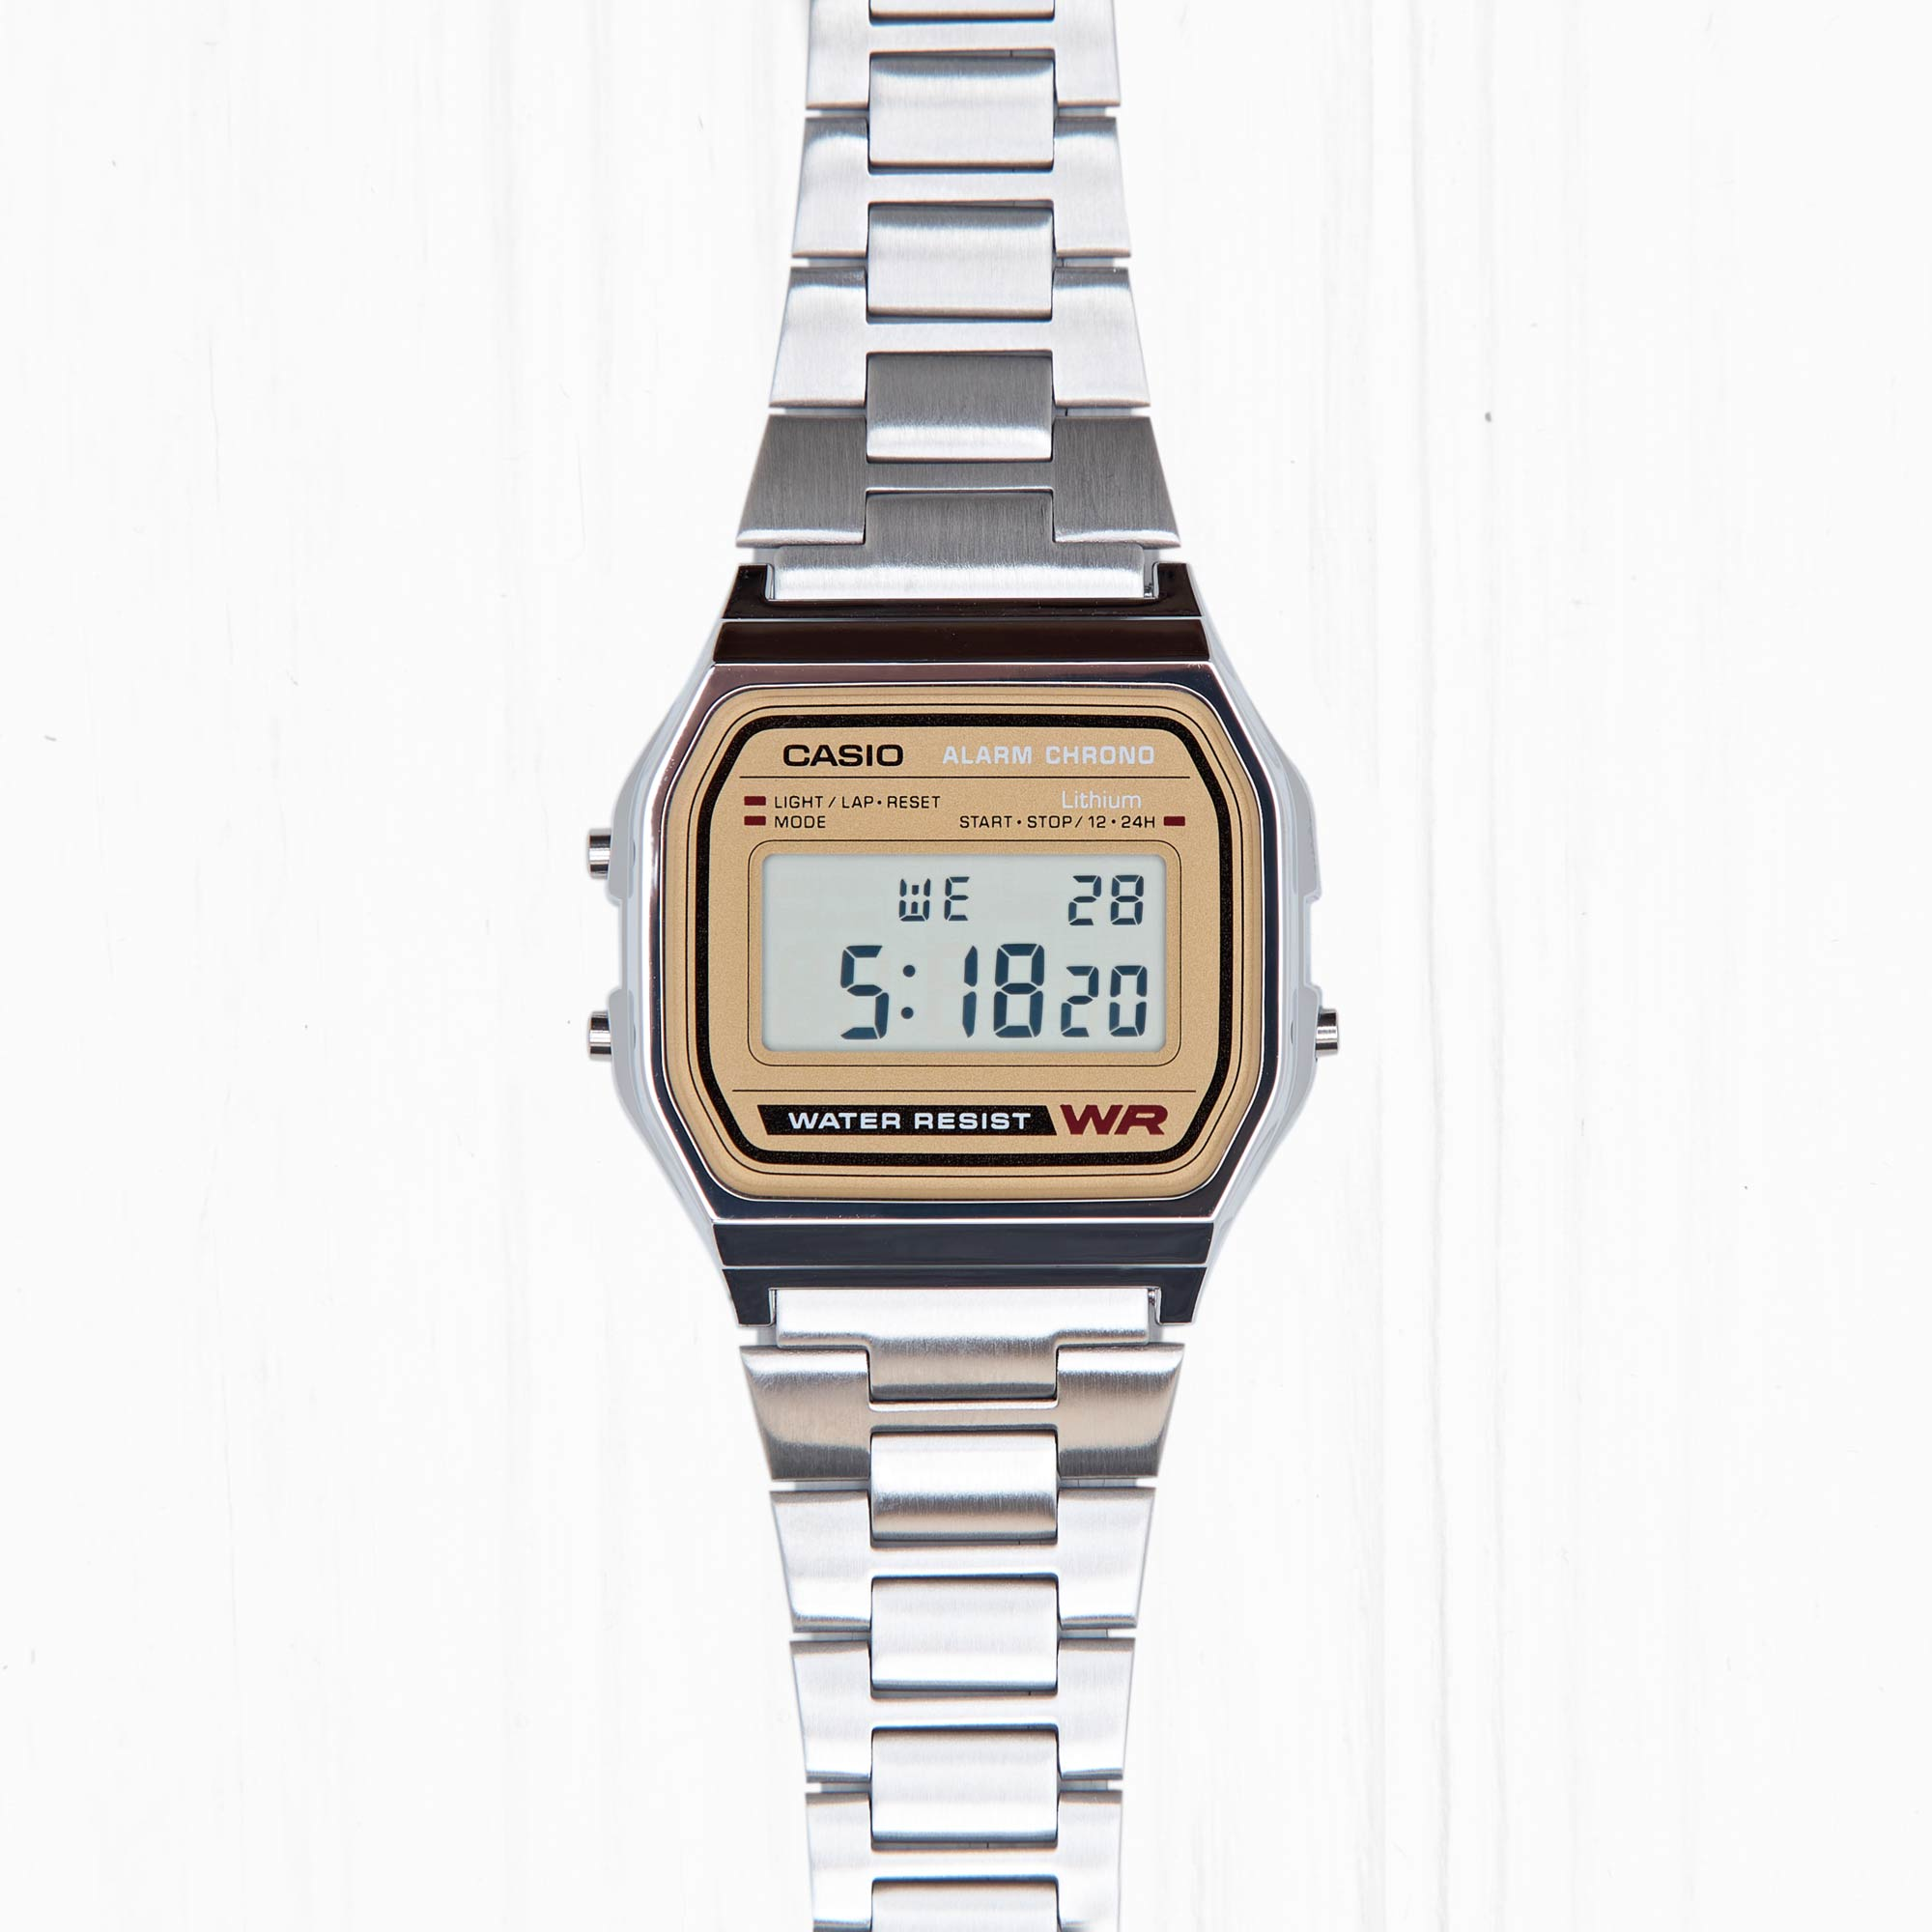 Часы Casio RETRO (A-158WEA-9E) Silver-Gold